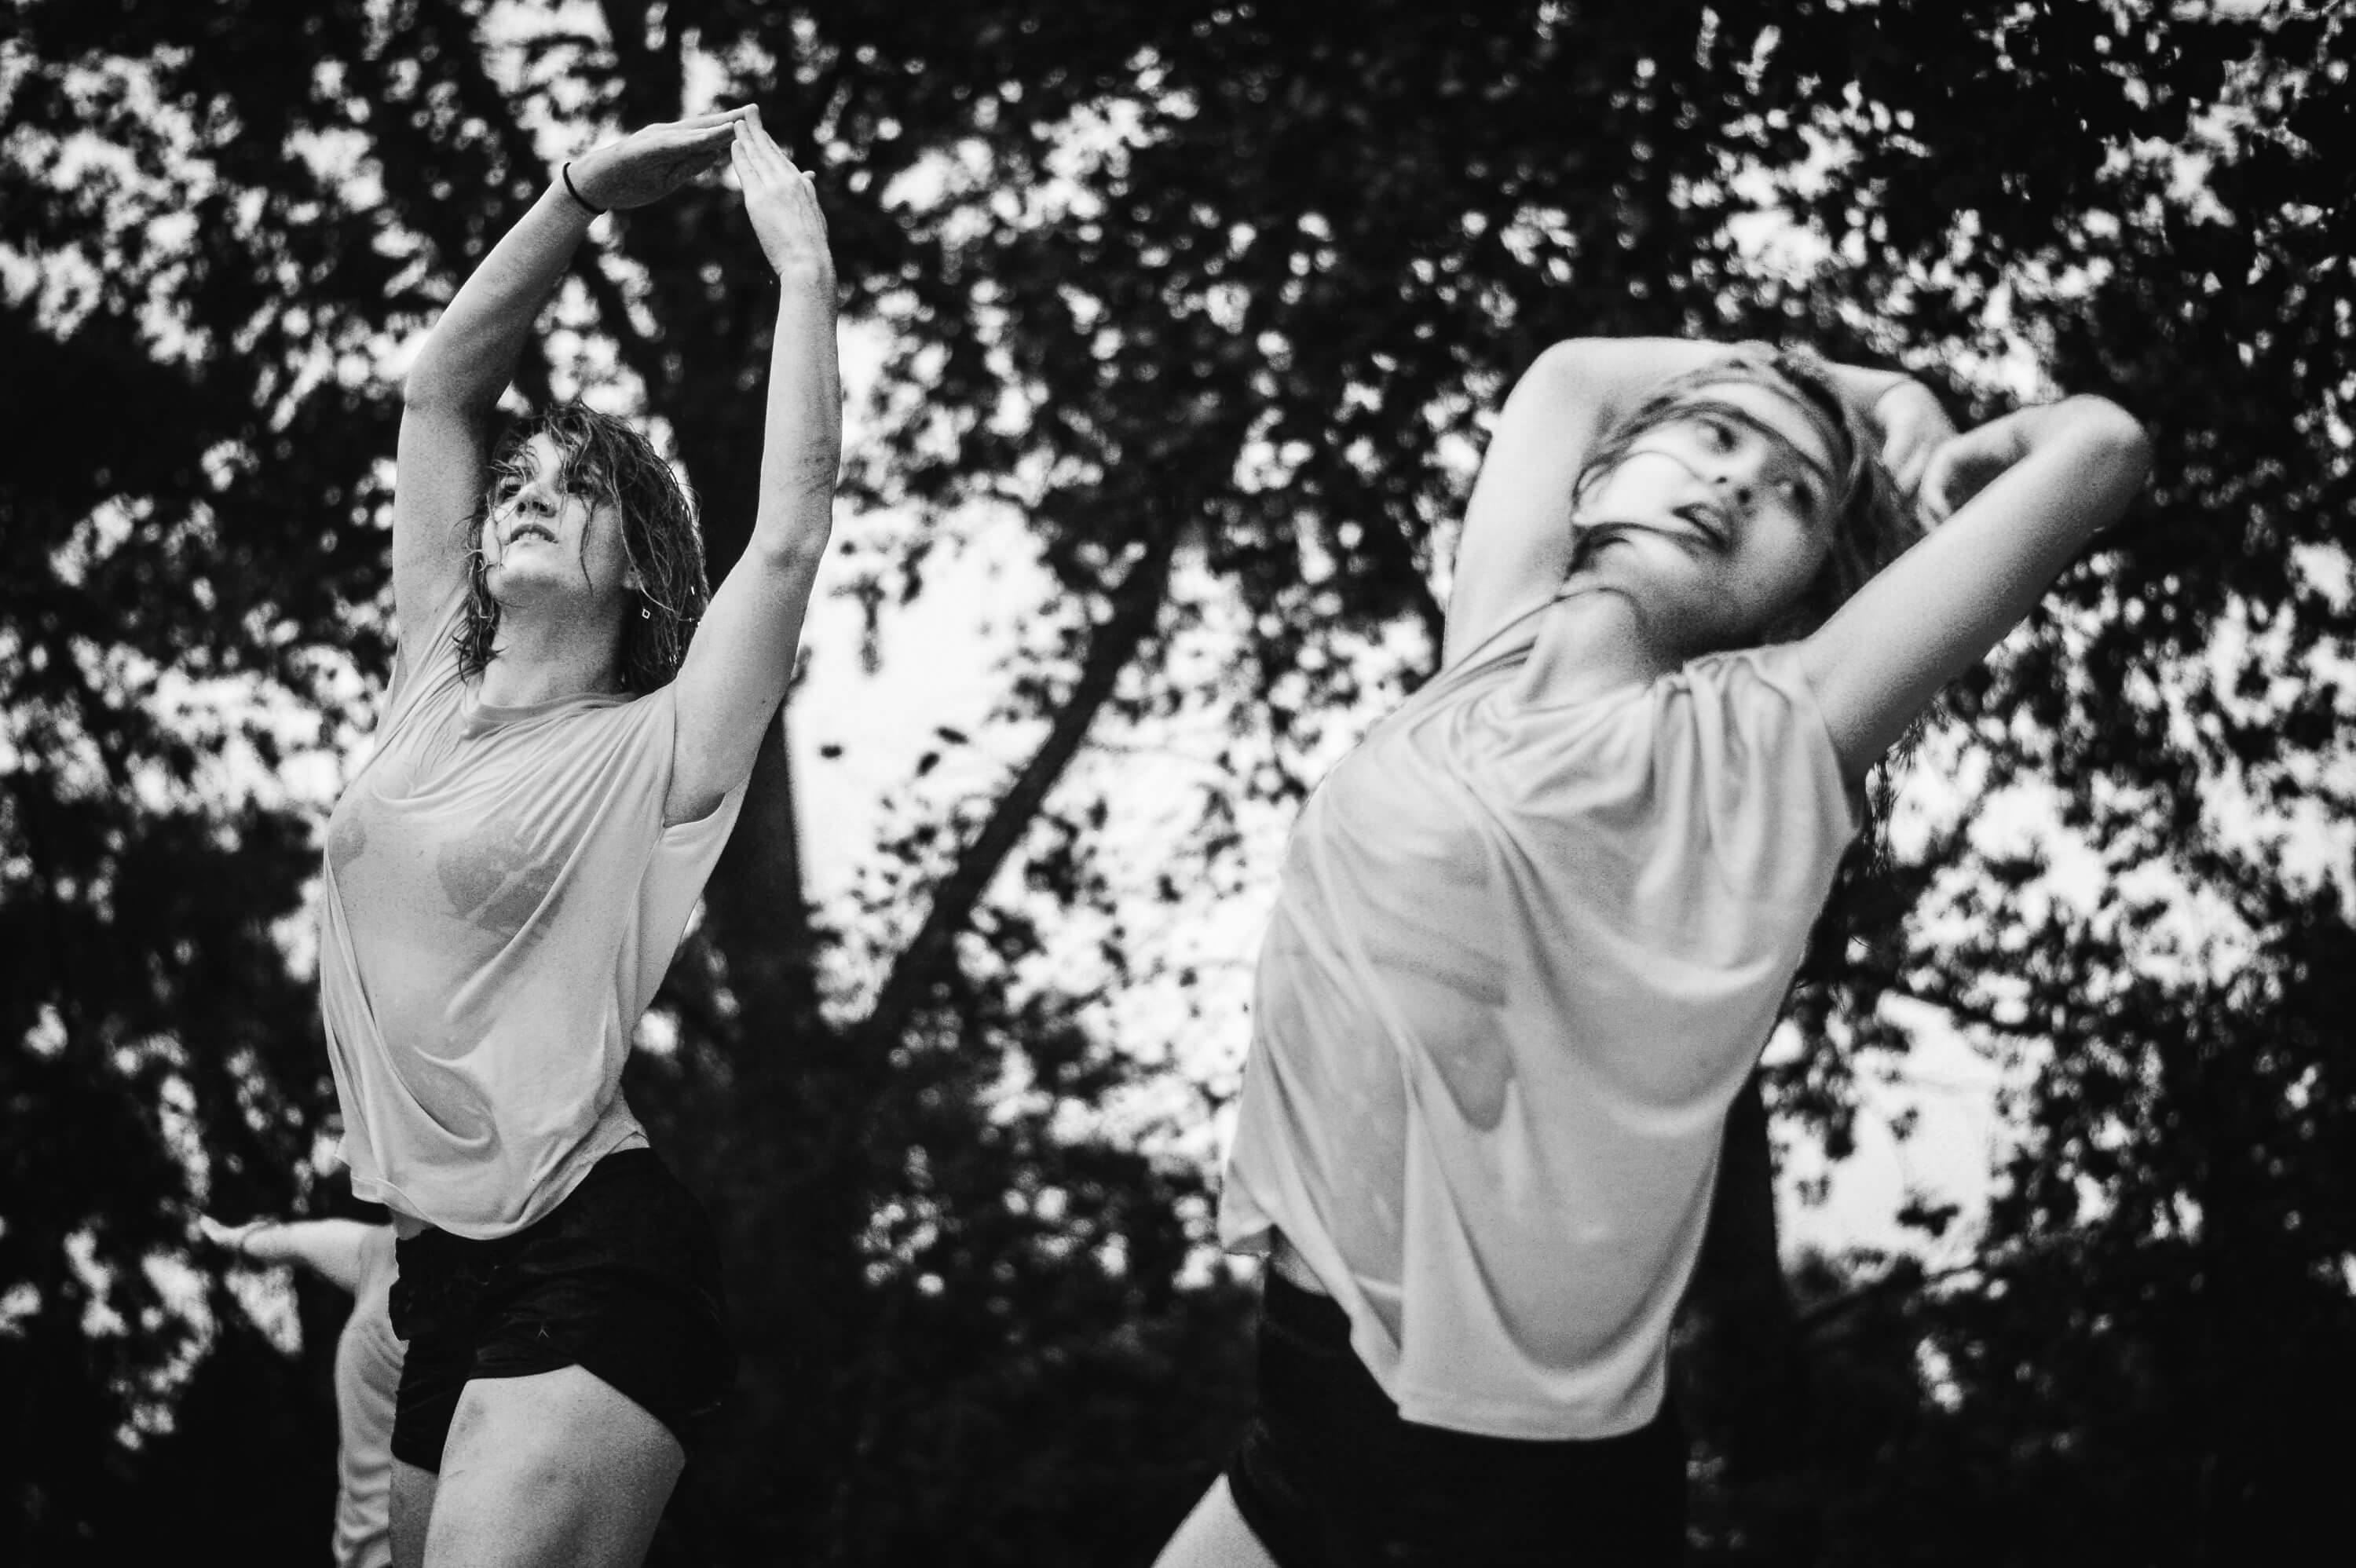 On Stage dance performance by an unnamed group, choreographed by Patrick Obrien, during a summer rain in the Socrates Sculpture Garden Quens, New York City, 2016